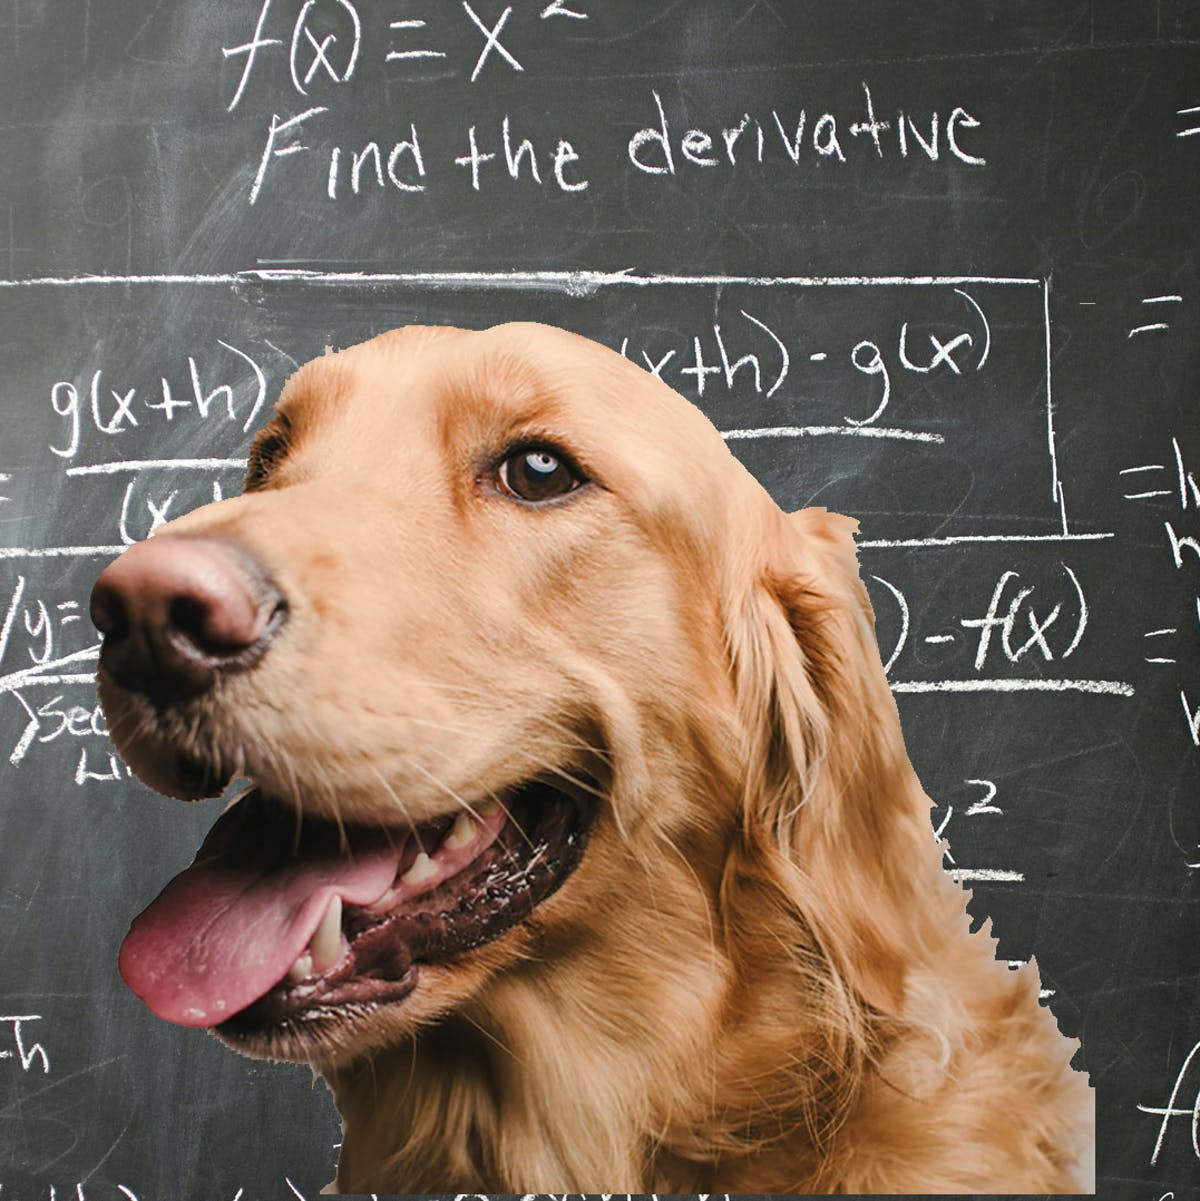 Scientists discover dogs can do math, too